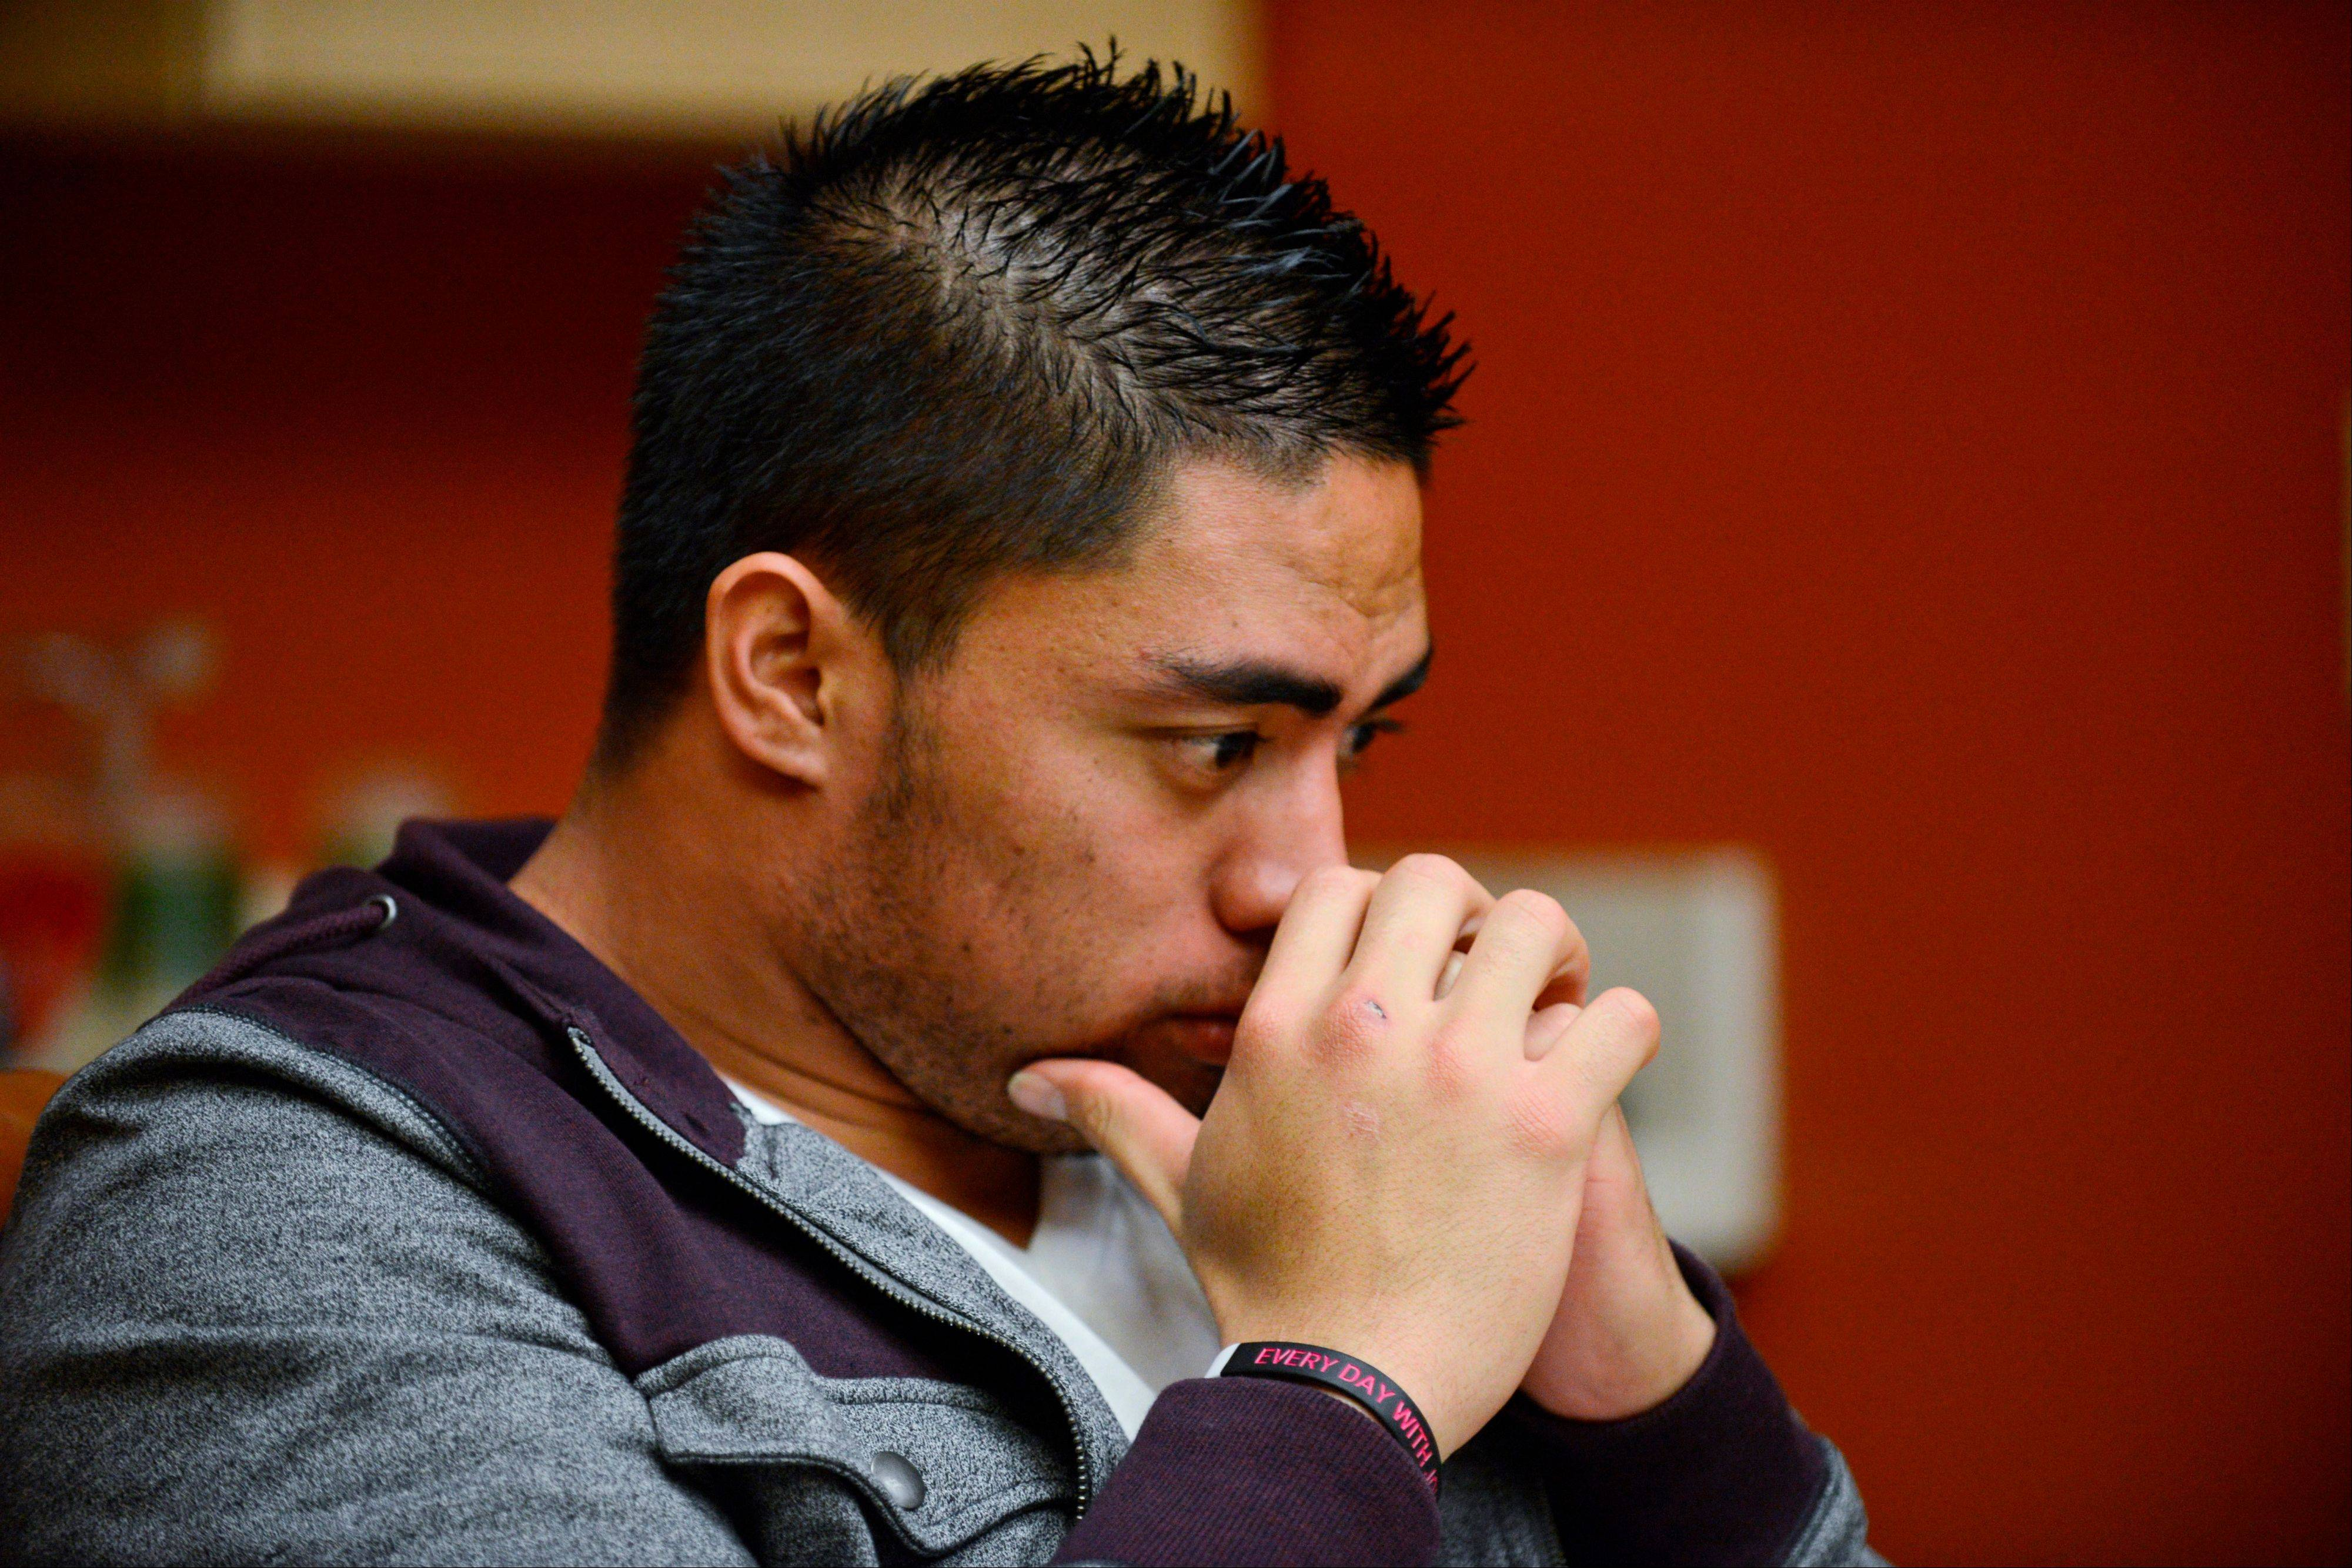 In a photo provided by ESPN, Notre Dame linebacker Manti Te'o pauses during an interview with ESPN on Friday, Jan. 18, 2013, in Bradenton, Fla. ESPN says Te'o maintains he was never involved in creating the dead girlfriend hoax. Te'o's first on-camera interview will be with Katie Couric on her daytime talk show.